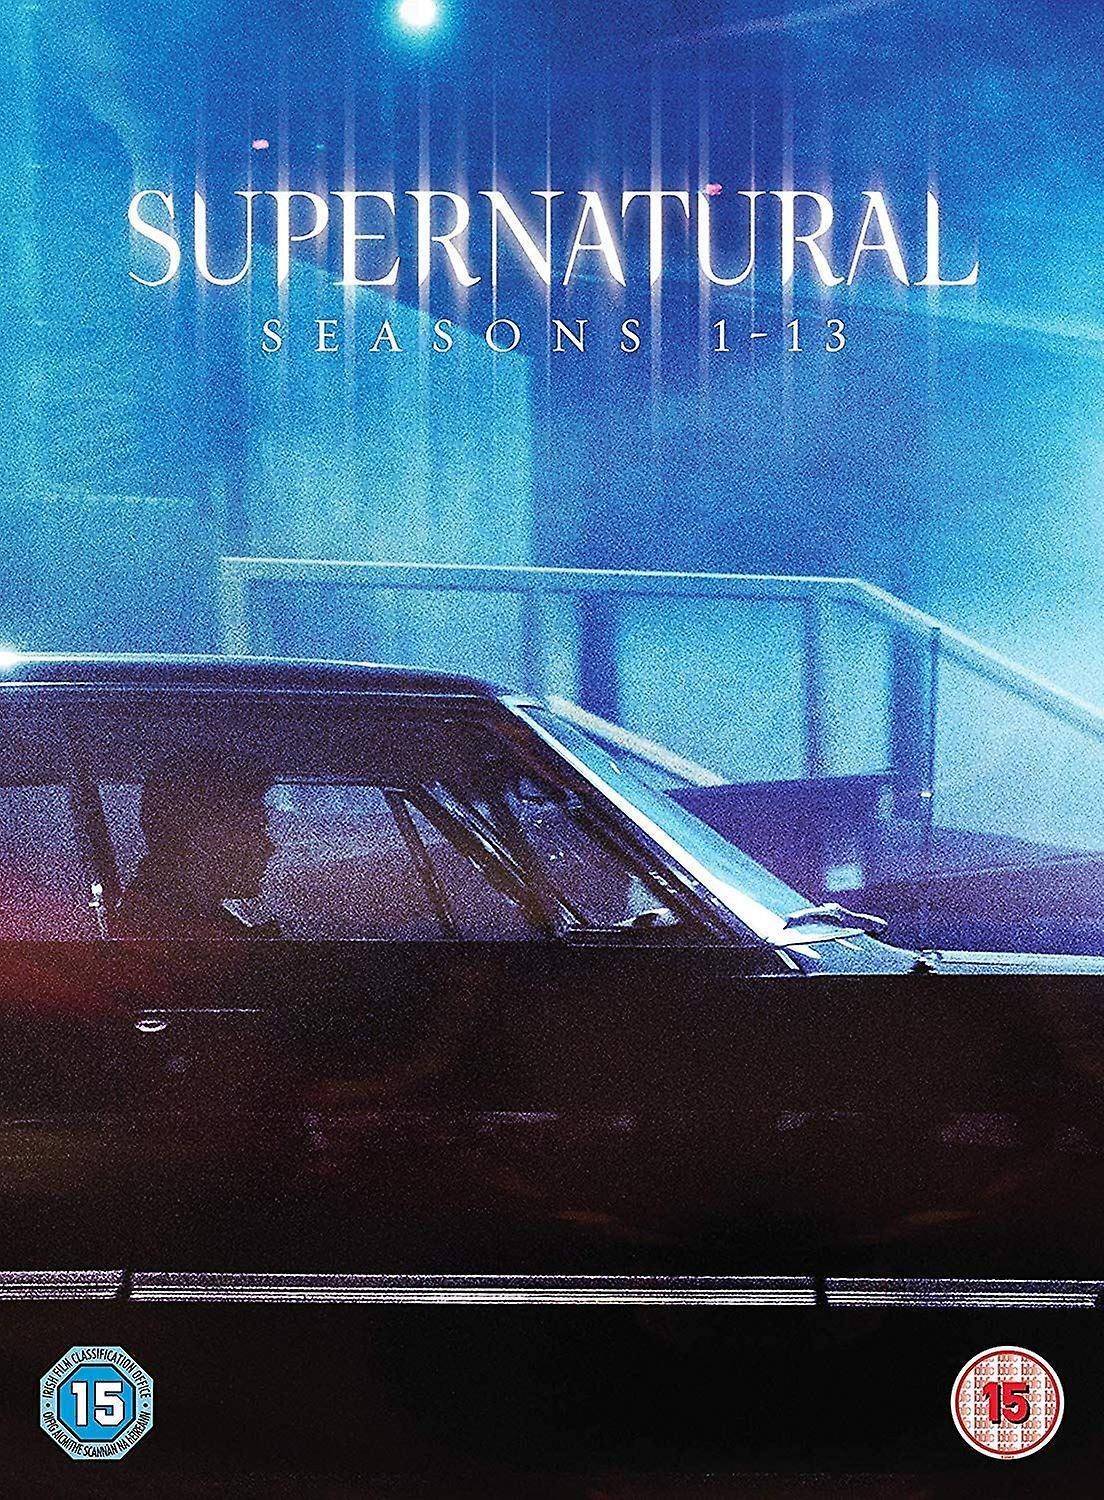 Supernatural: Seasons 1-13 DVD Box Set